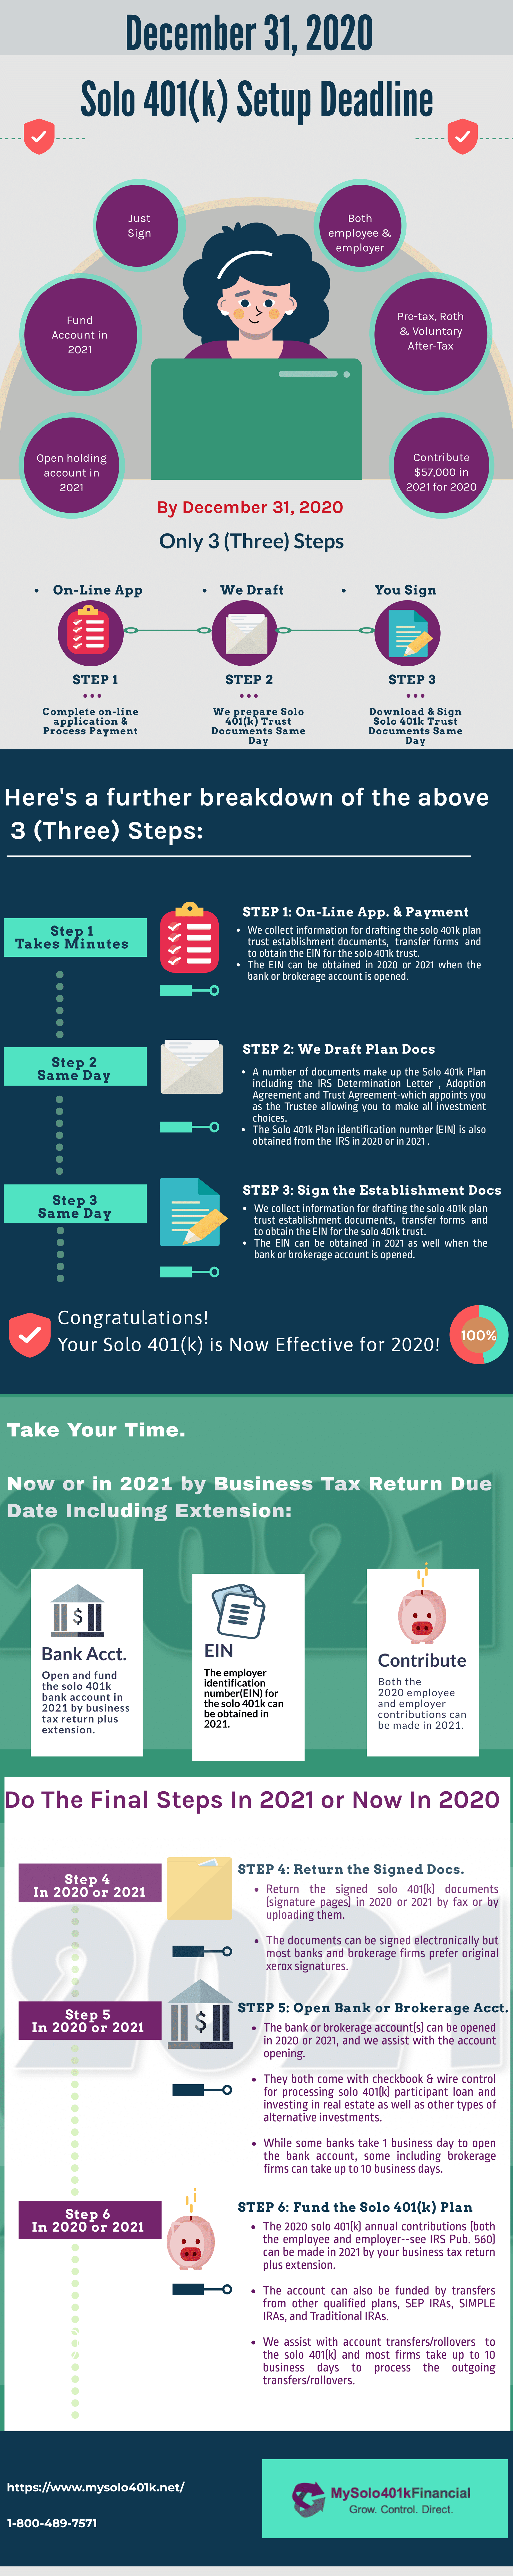 The solo 401k plan can bet setup for 2020 by December 31, 2020 in one day.